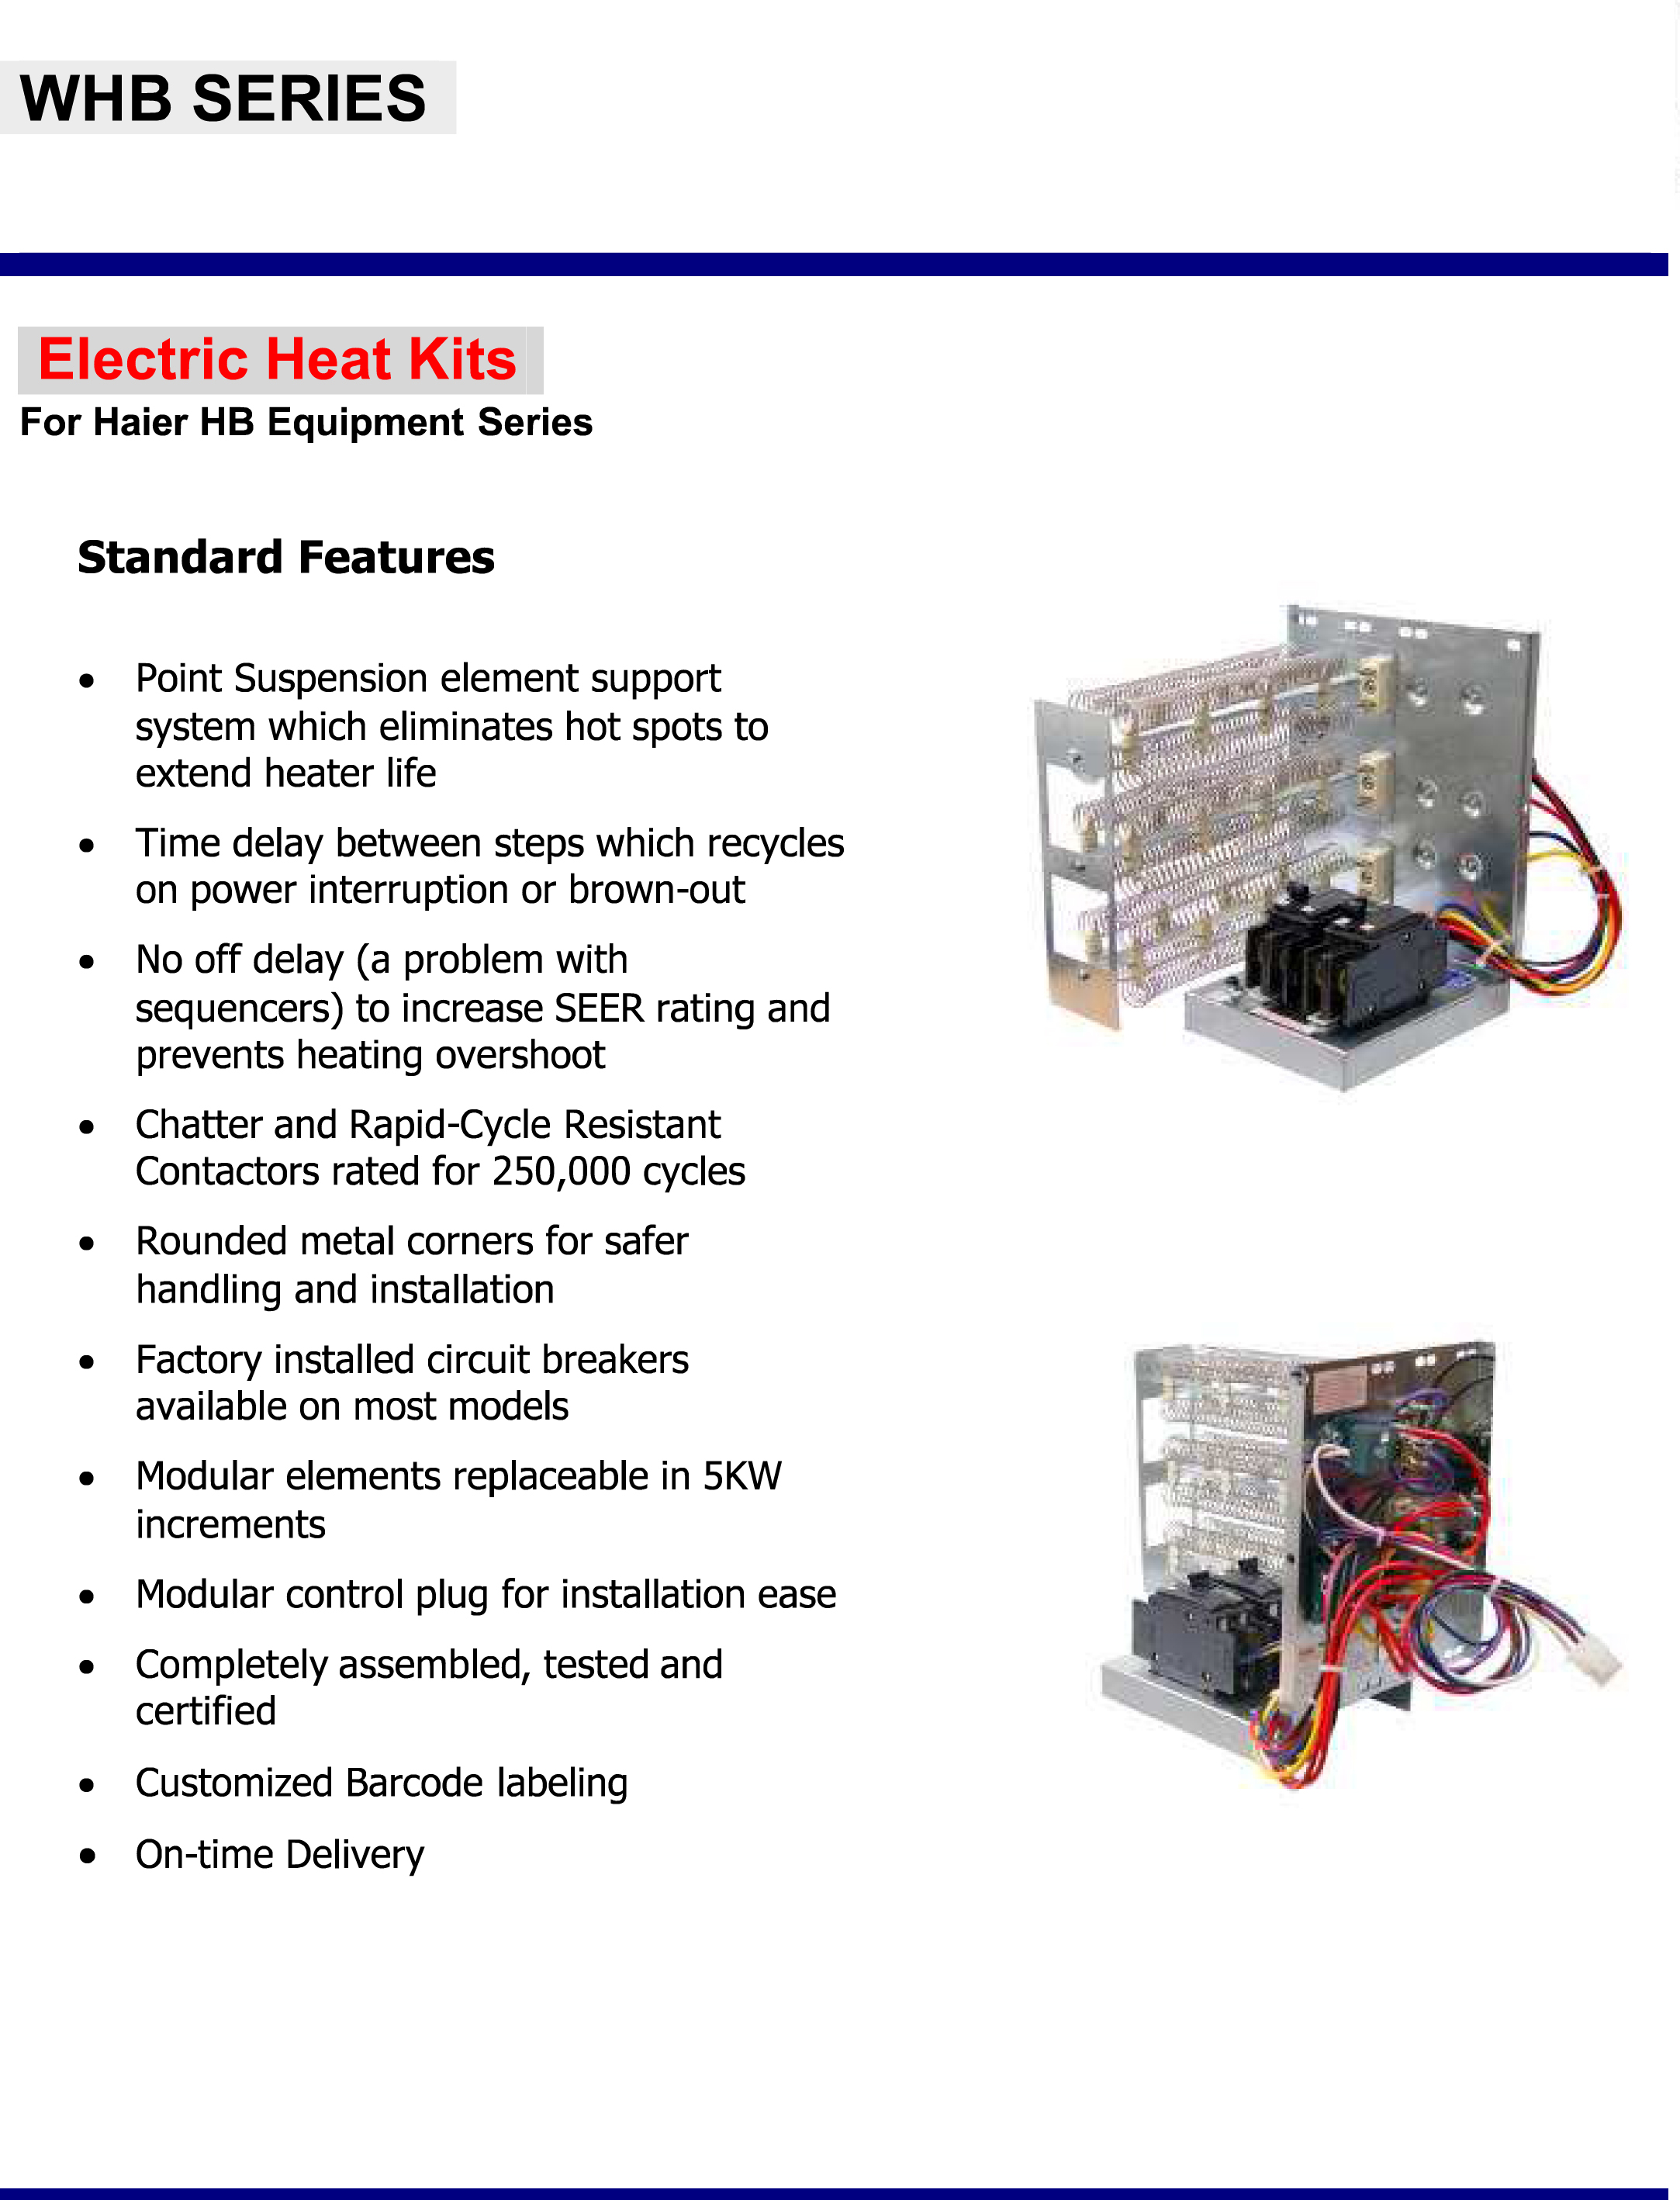 haier heat pump wiring diagram haier image wiring 5 kw heat strip for haier air handlers click for models whb0502 on haier heat pump · wiring diagram